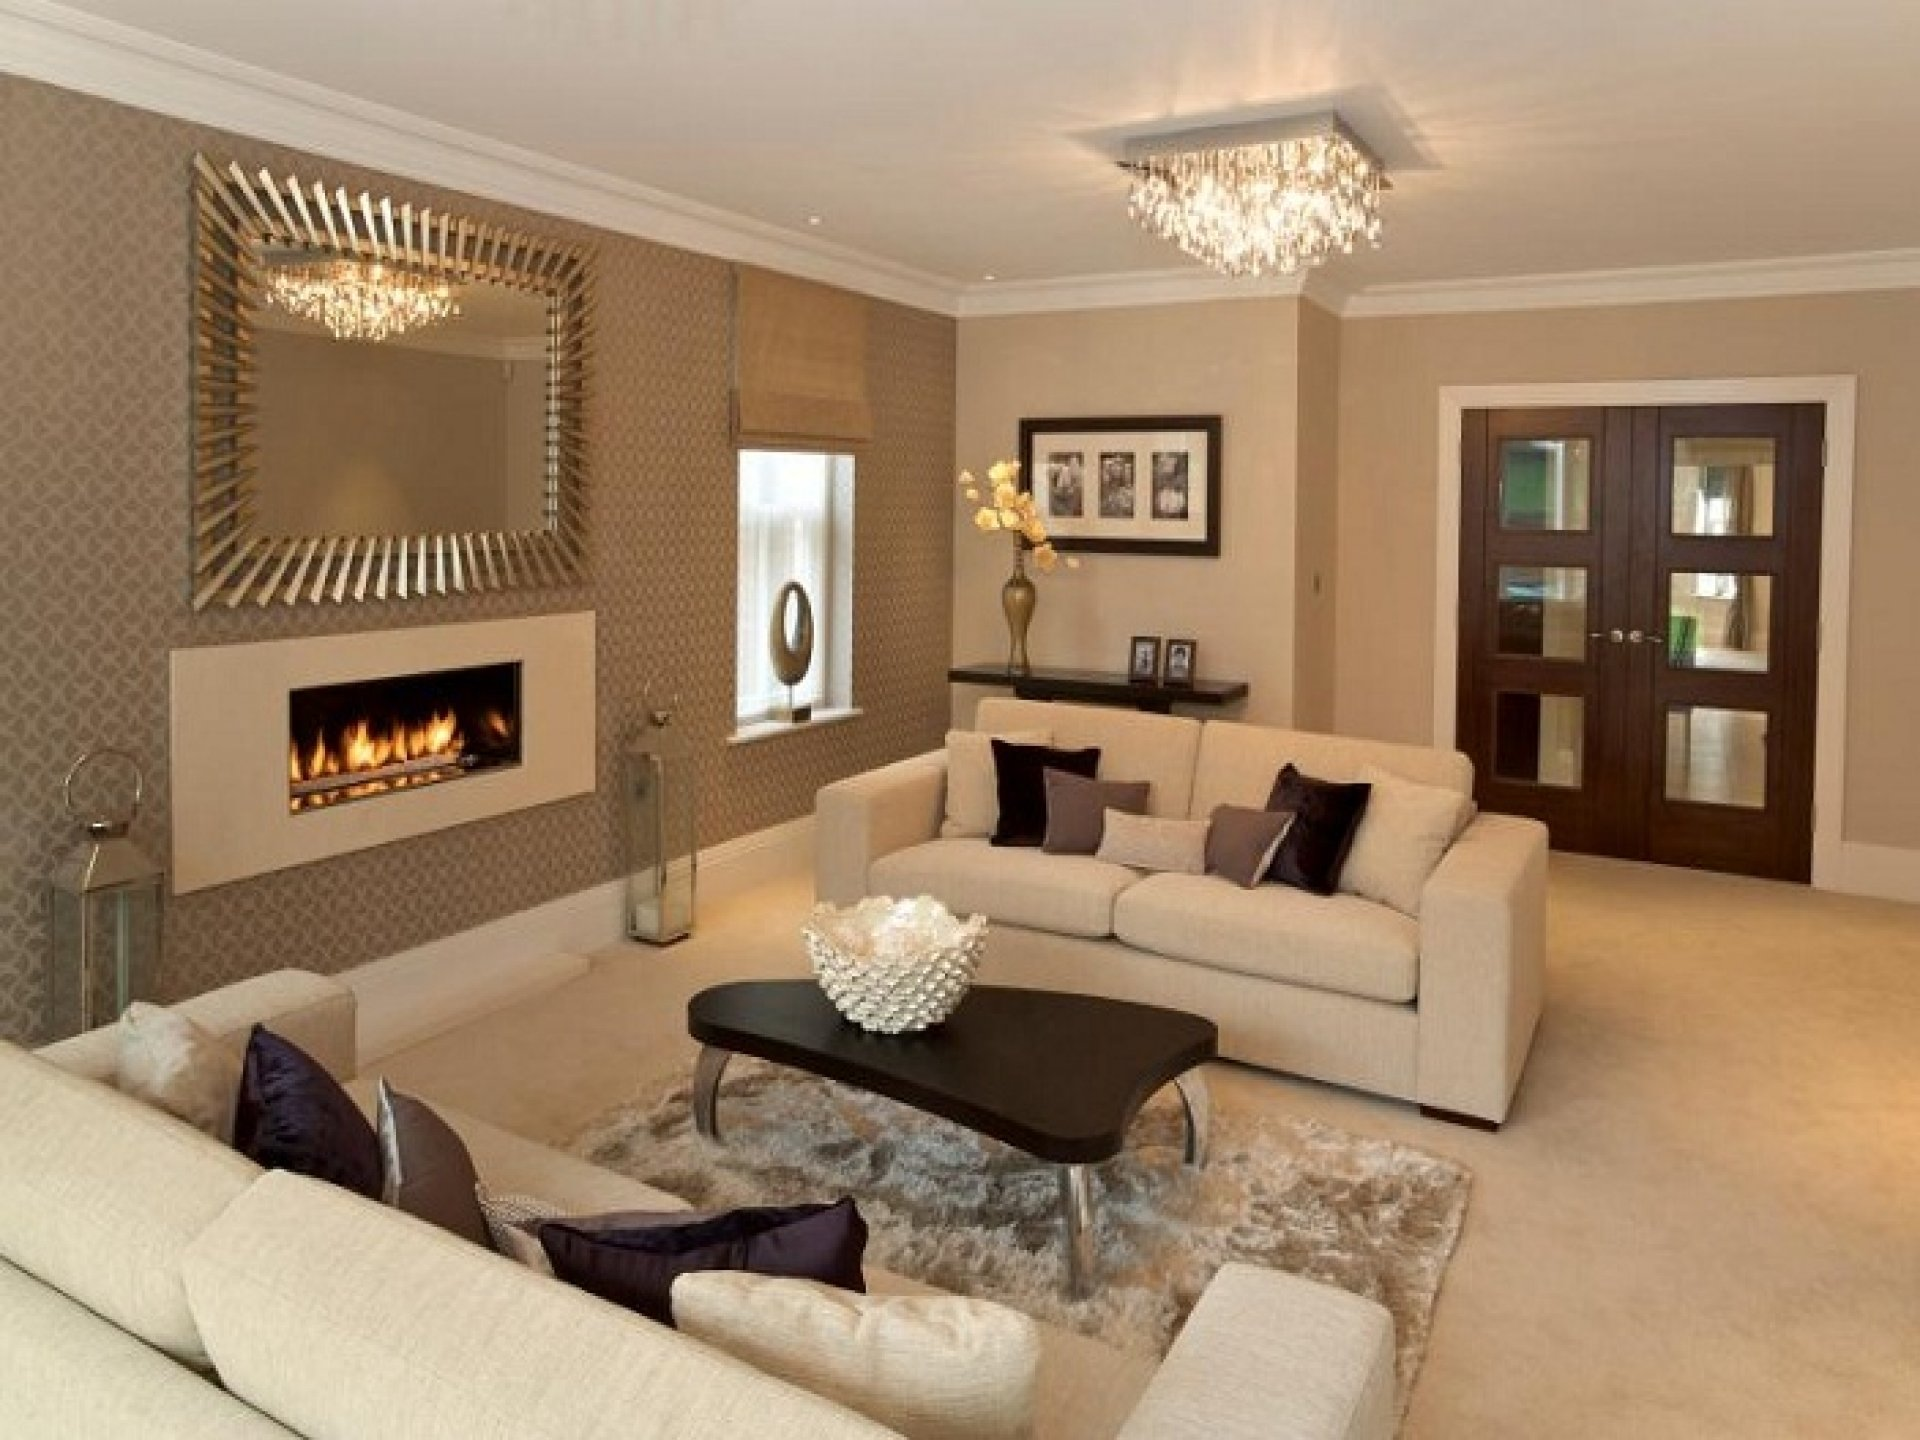 10 Attractive Wall Color Ideas For Living Room modern living room furniture ideas paint colors for living rooms 1 2020